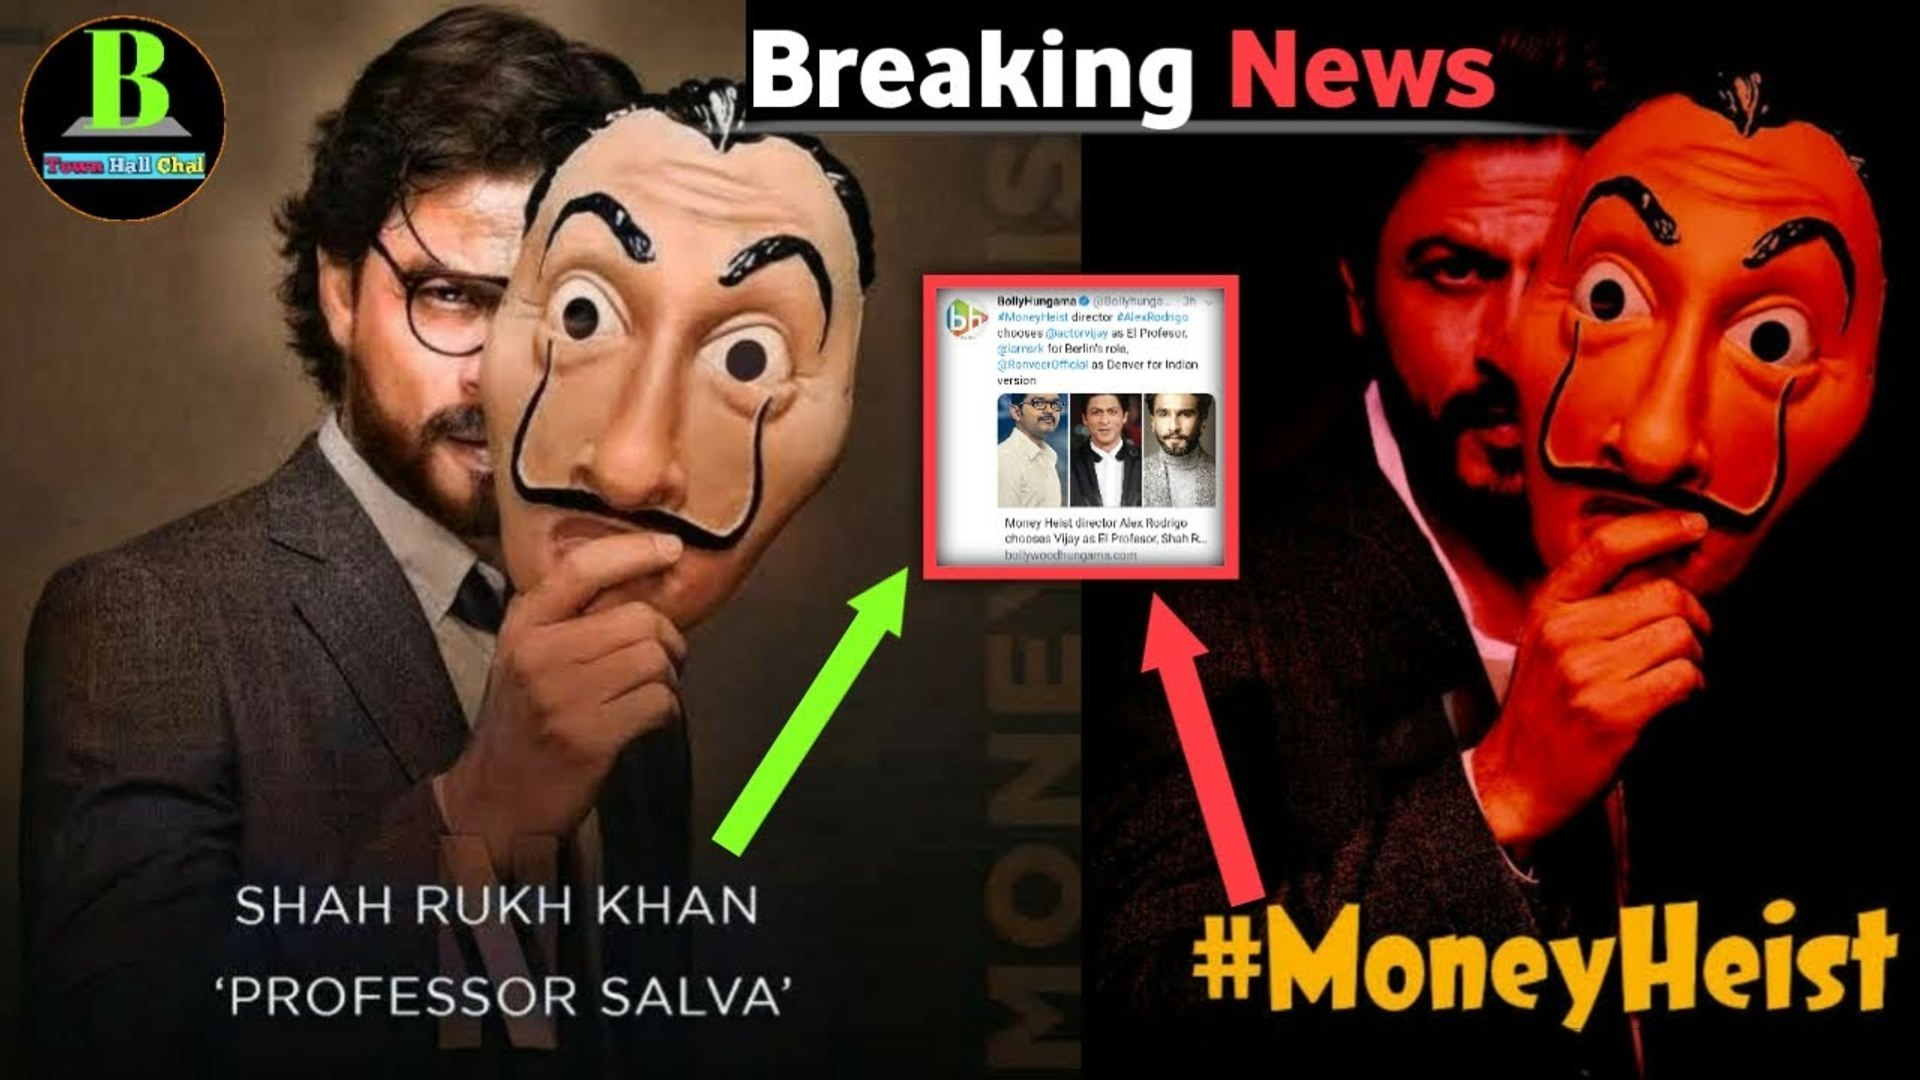 Breaking News - Shahrukh Khan in Money Heist as Profesor Role